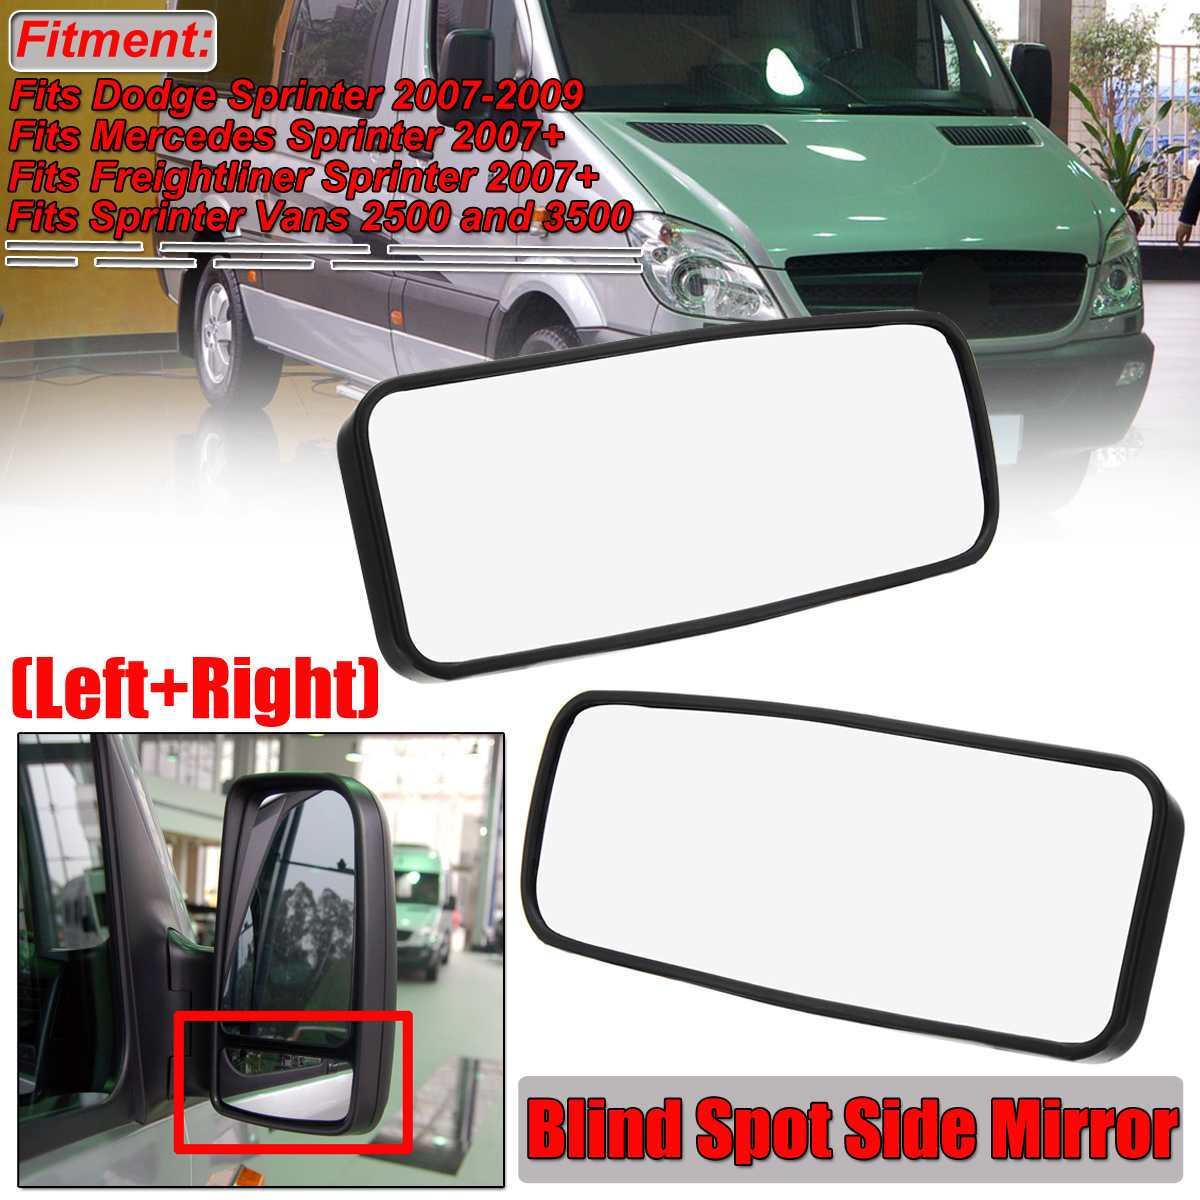 Front,Right Passenger Side DOOR MIRROR PLATE For Dodge Sprinter 2500 3500